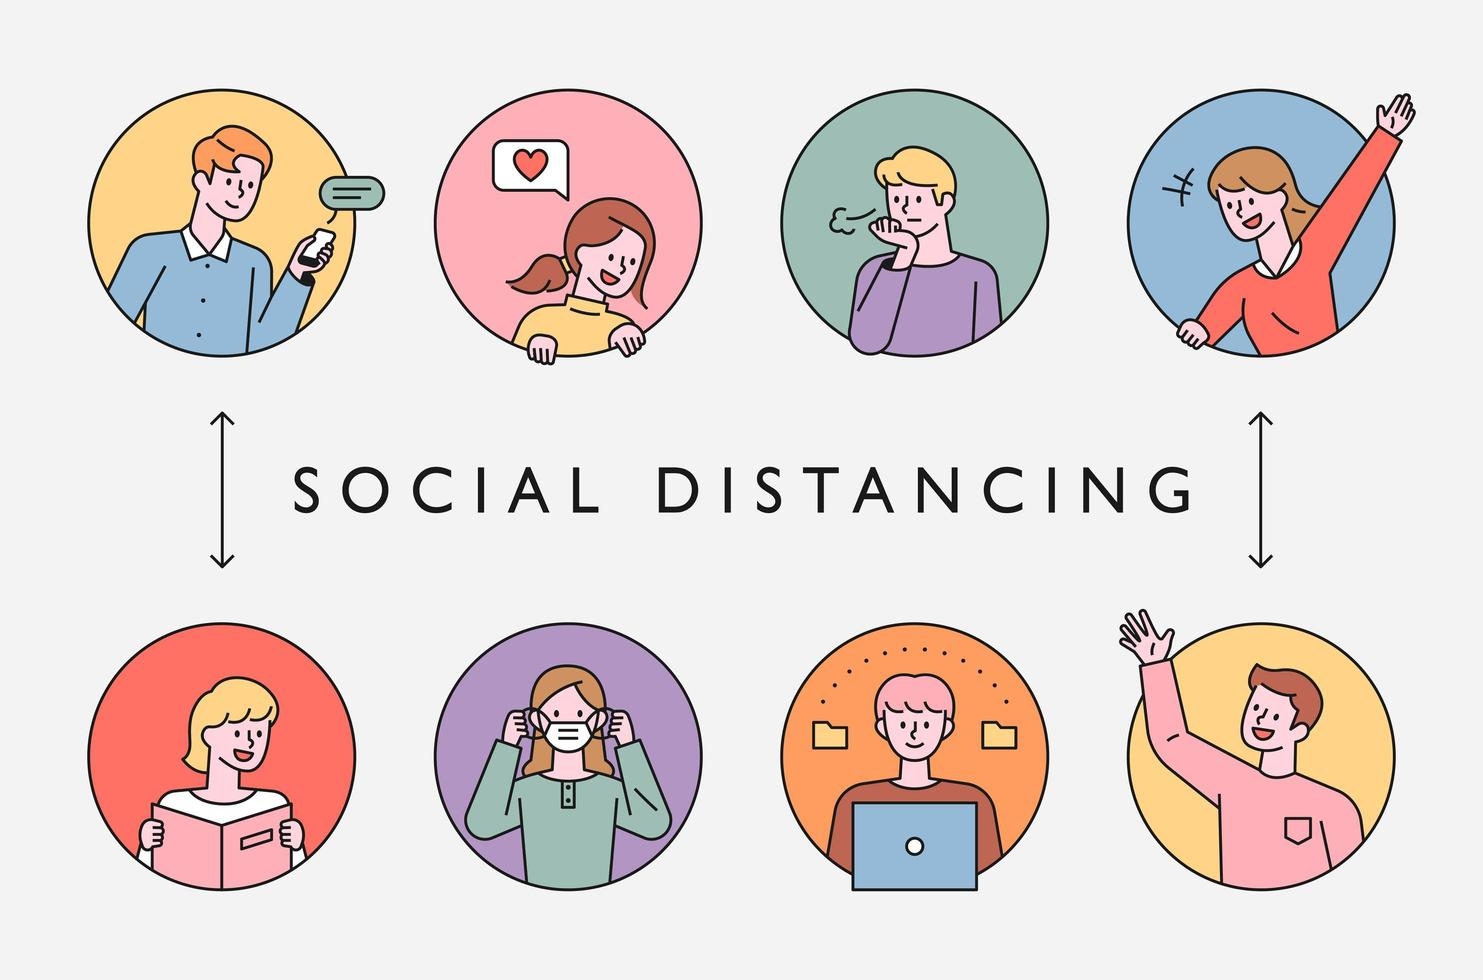 Social distancing in the pandemic era. vector